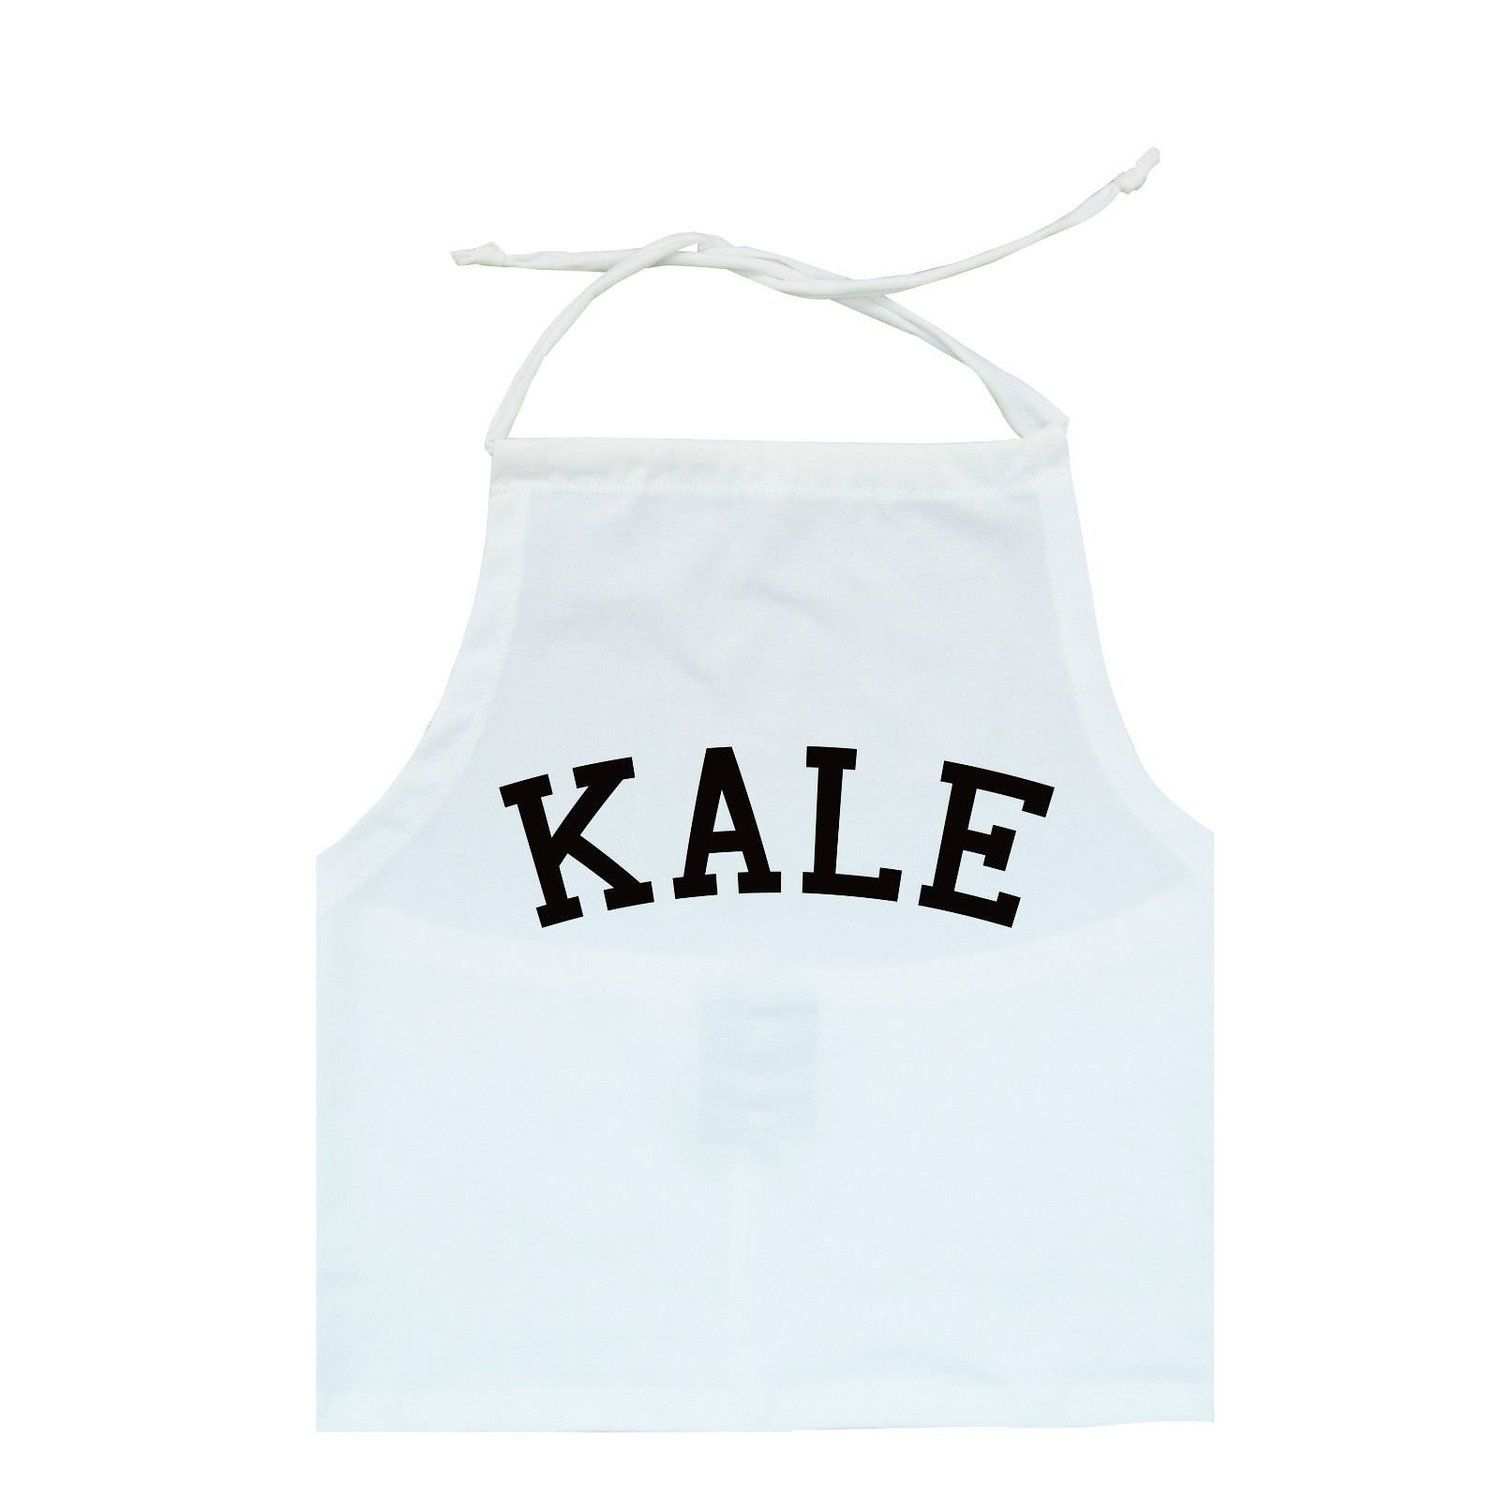 Kale Halter Crop Top Fun Women S Tumblr Fashion At Amazon Women S Clothing Store With Images Colorful Crop Tops Grunge Shirt Halter Neck Crop Top